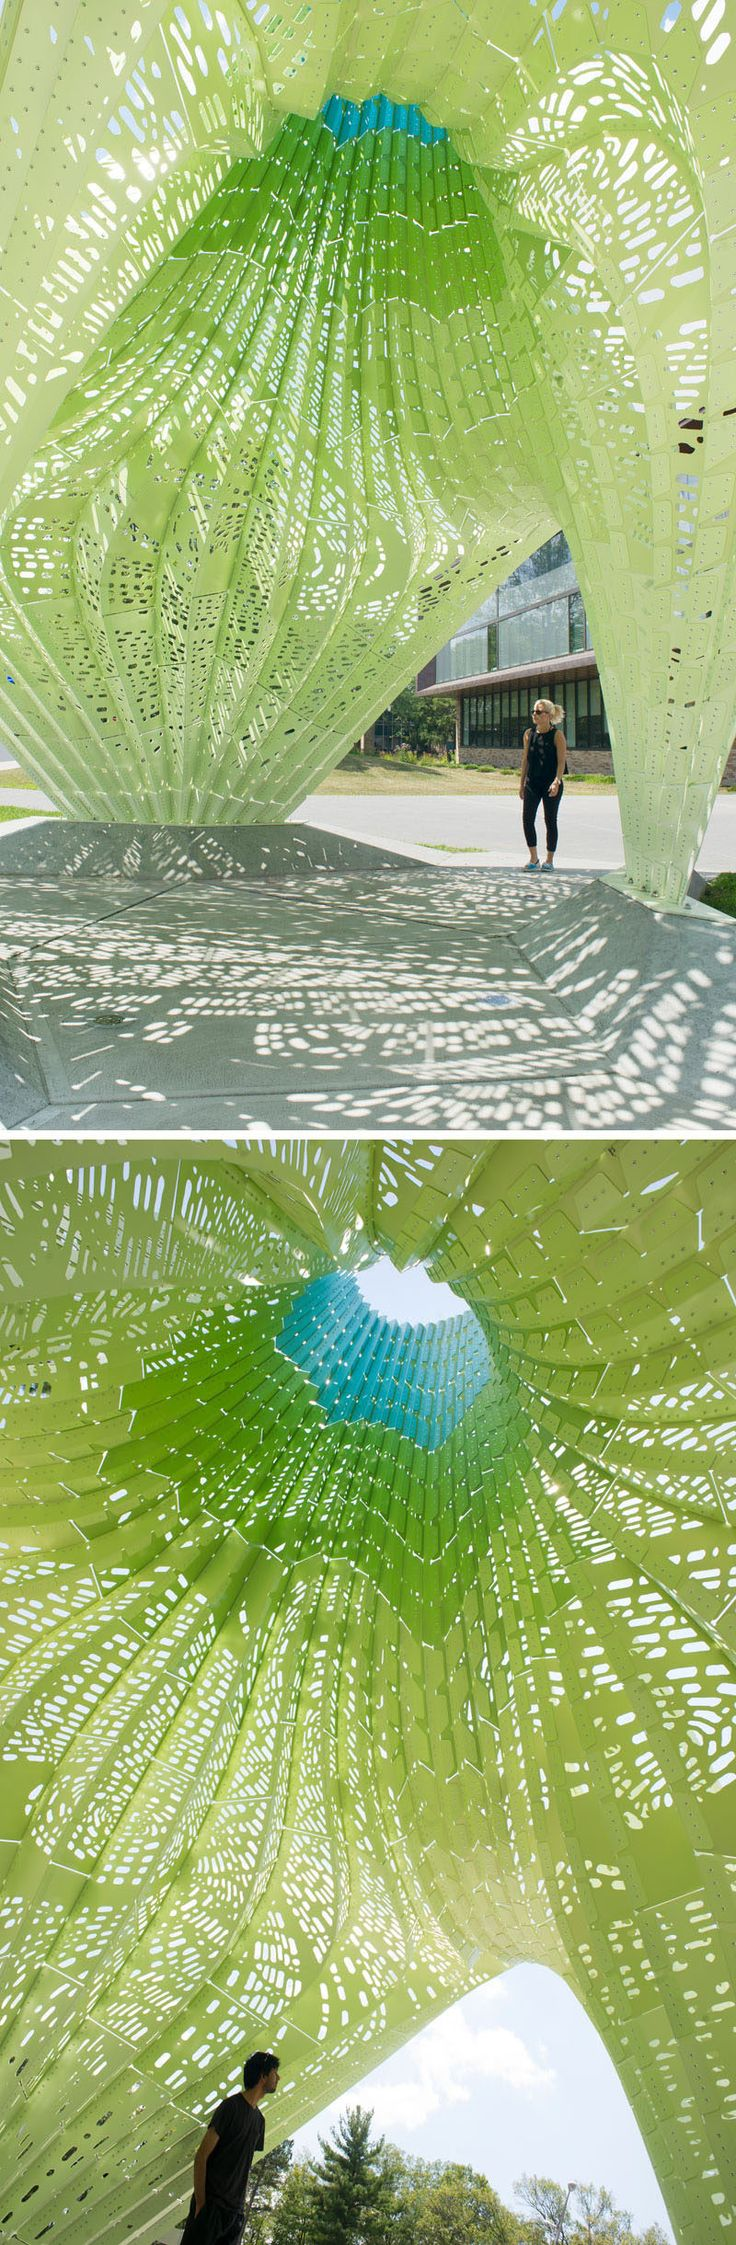 Marc Fornes / THEVERYMANY have recently completed their latest sculptural design HYPARBOLE, that sits at the entrance to Rhode Island College's Fine Arts Center. #ModernArt #ModernSculpture #Sculpture #PublicArt